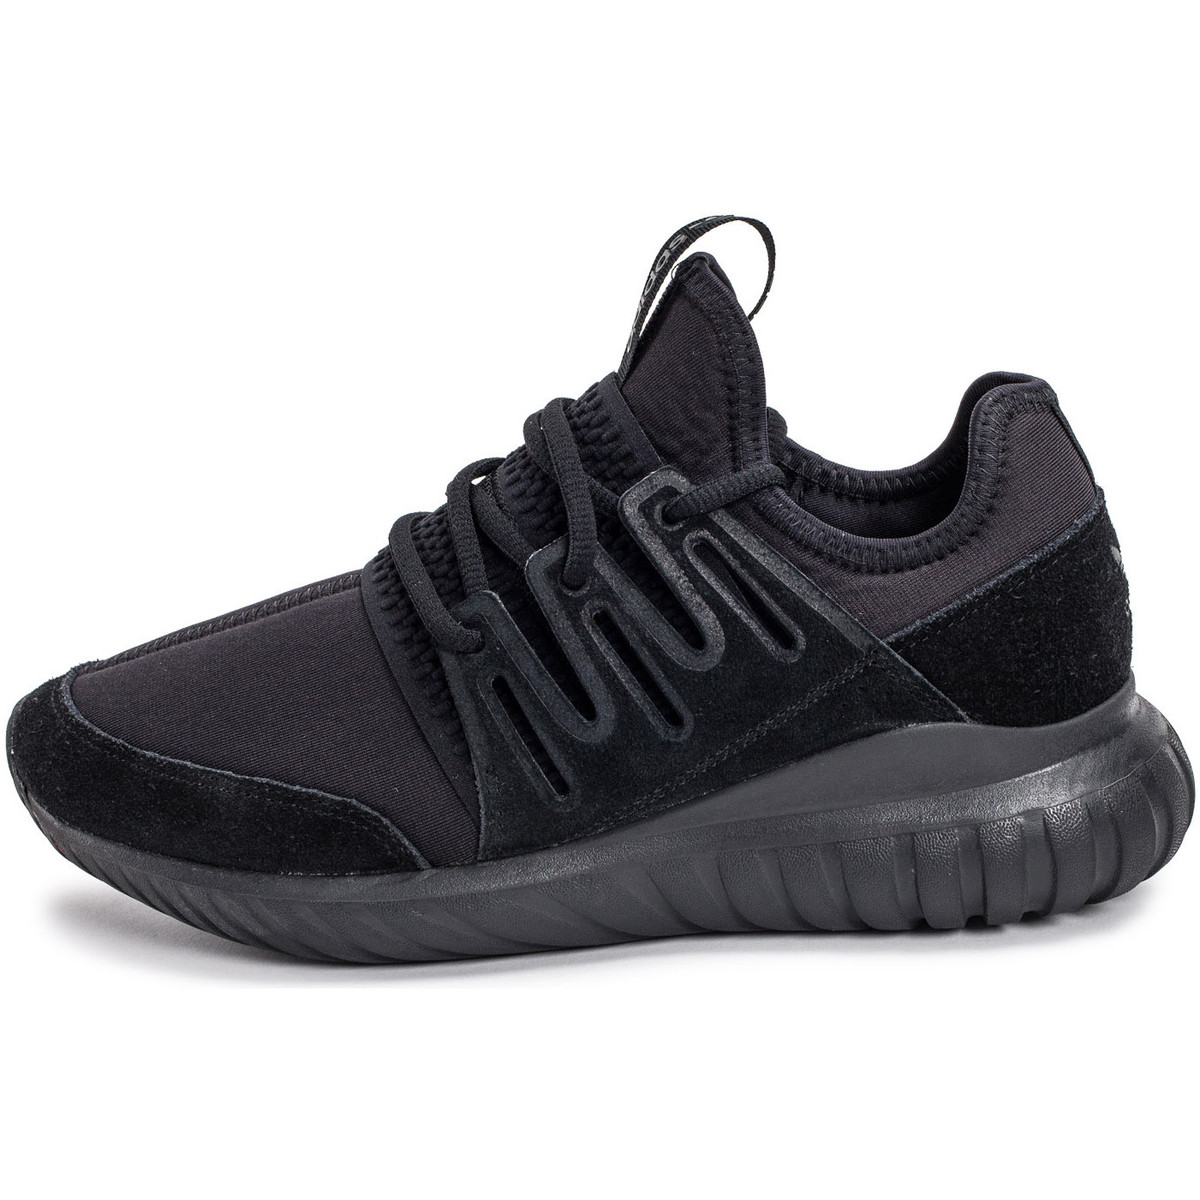 adidas Originals Tubular Radial Noir